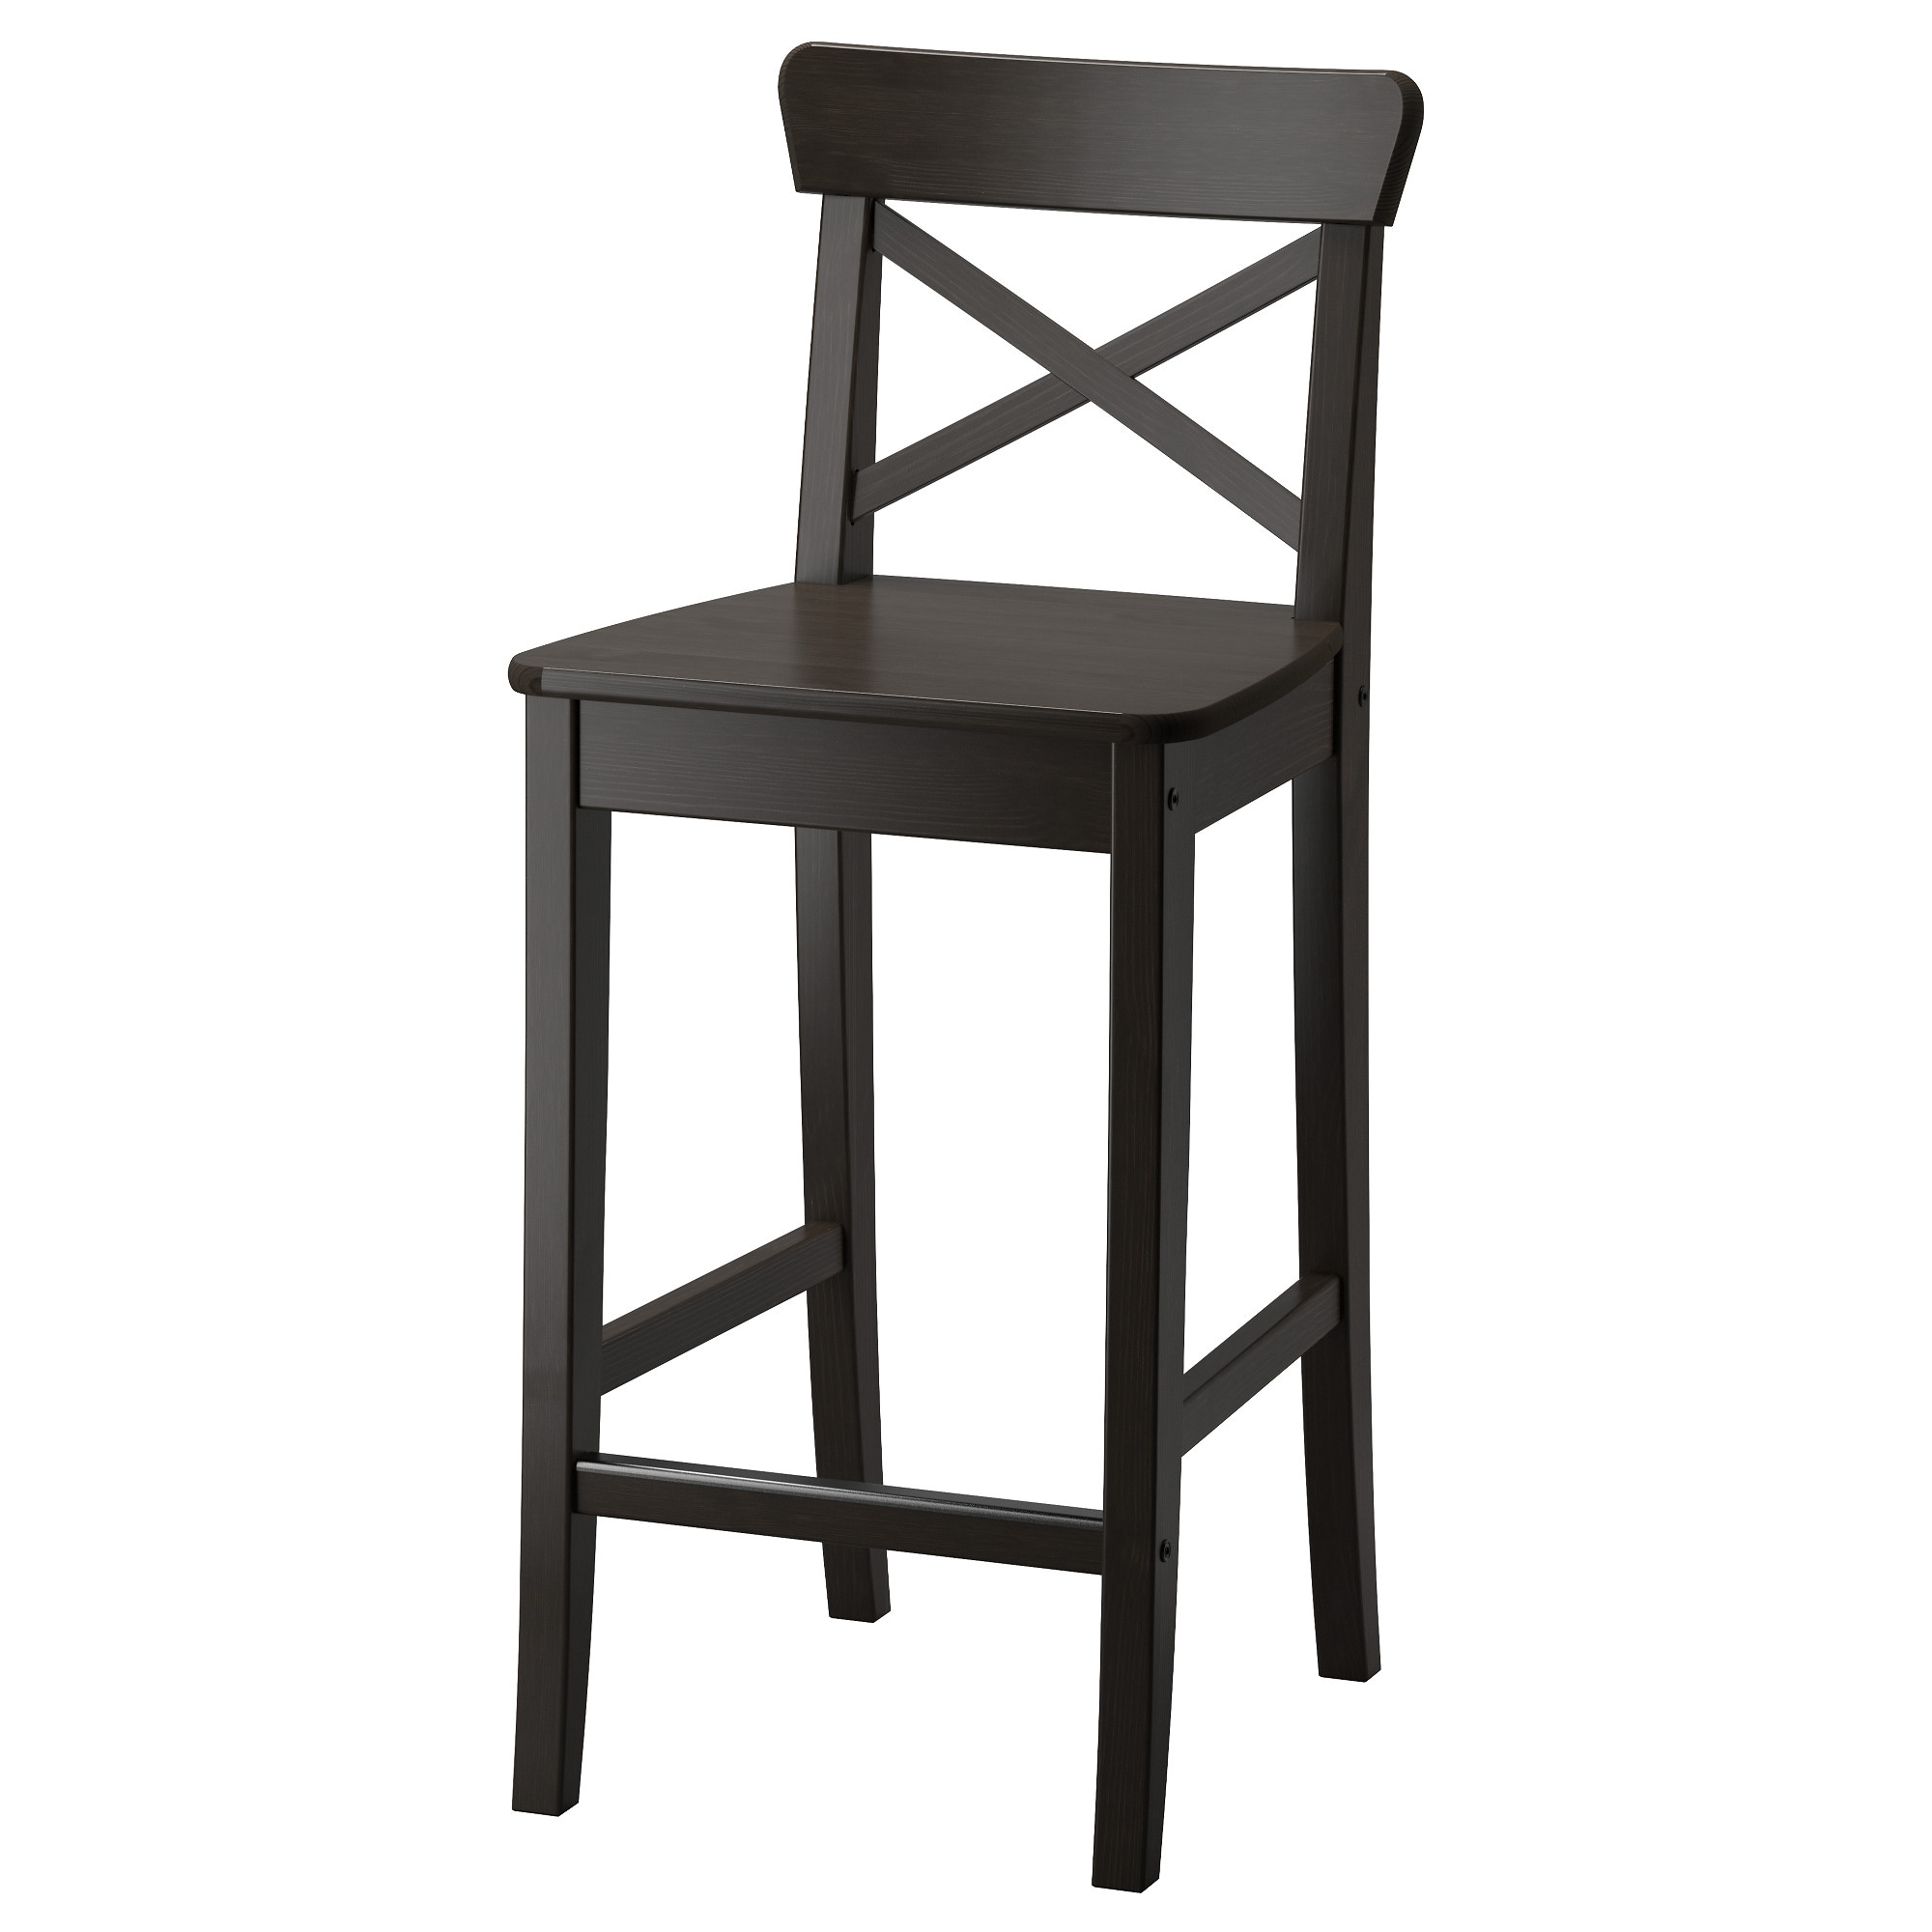 High Quality INGOLF Bar Stool With Backrest   IKEA